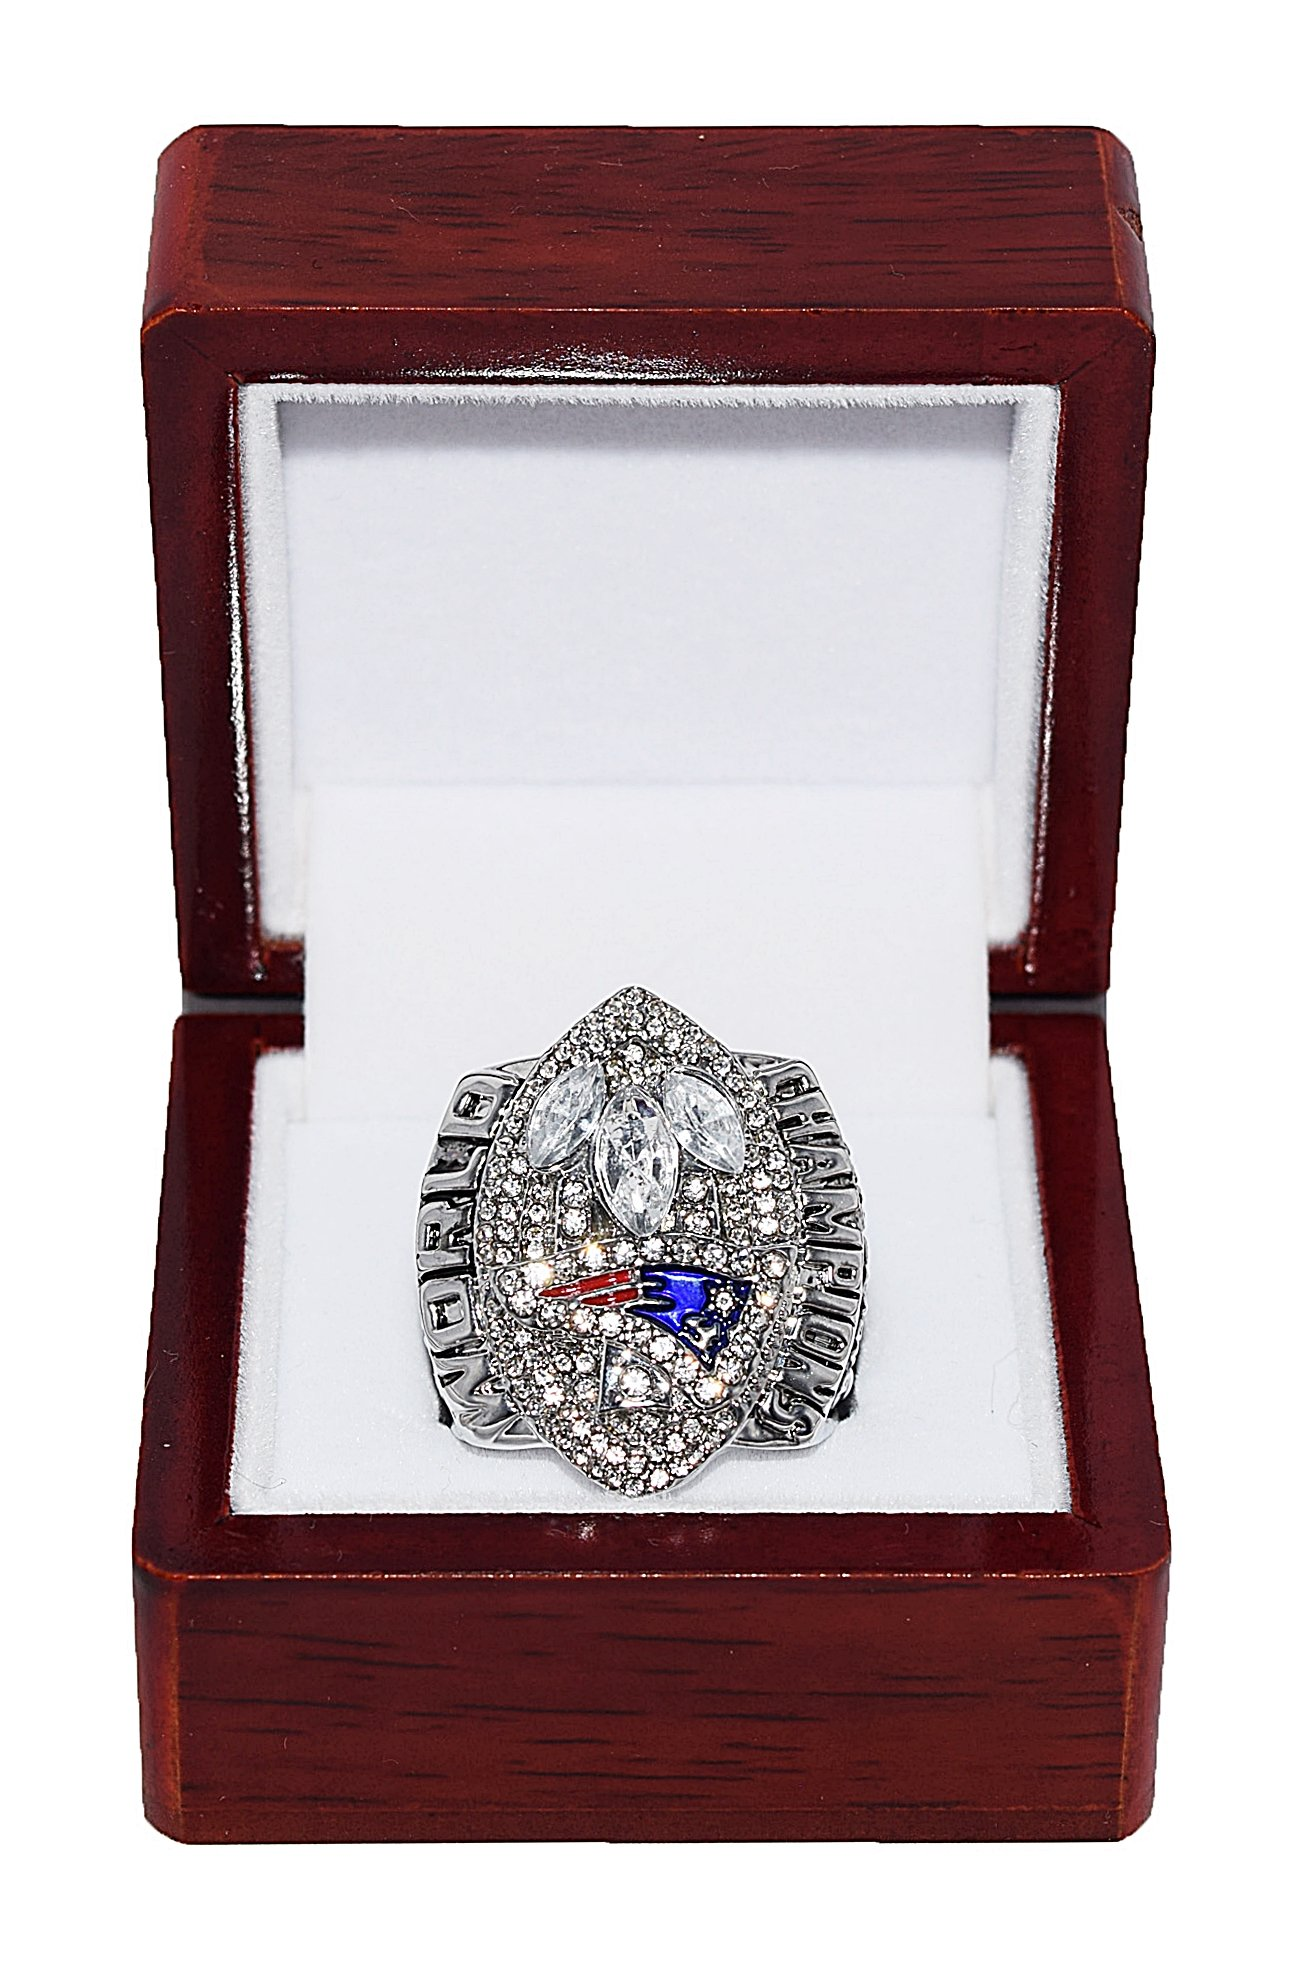 NEW ENGLAND PATRIOTS (Tom Brady) 2004 SUPER BOWL XXXIX WORLD CHAMPIONS (Back to Back Wins) Rare & Collectible High Quality Replica NFL Football Silver Championship Ring with Cherrywood Display Box